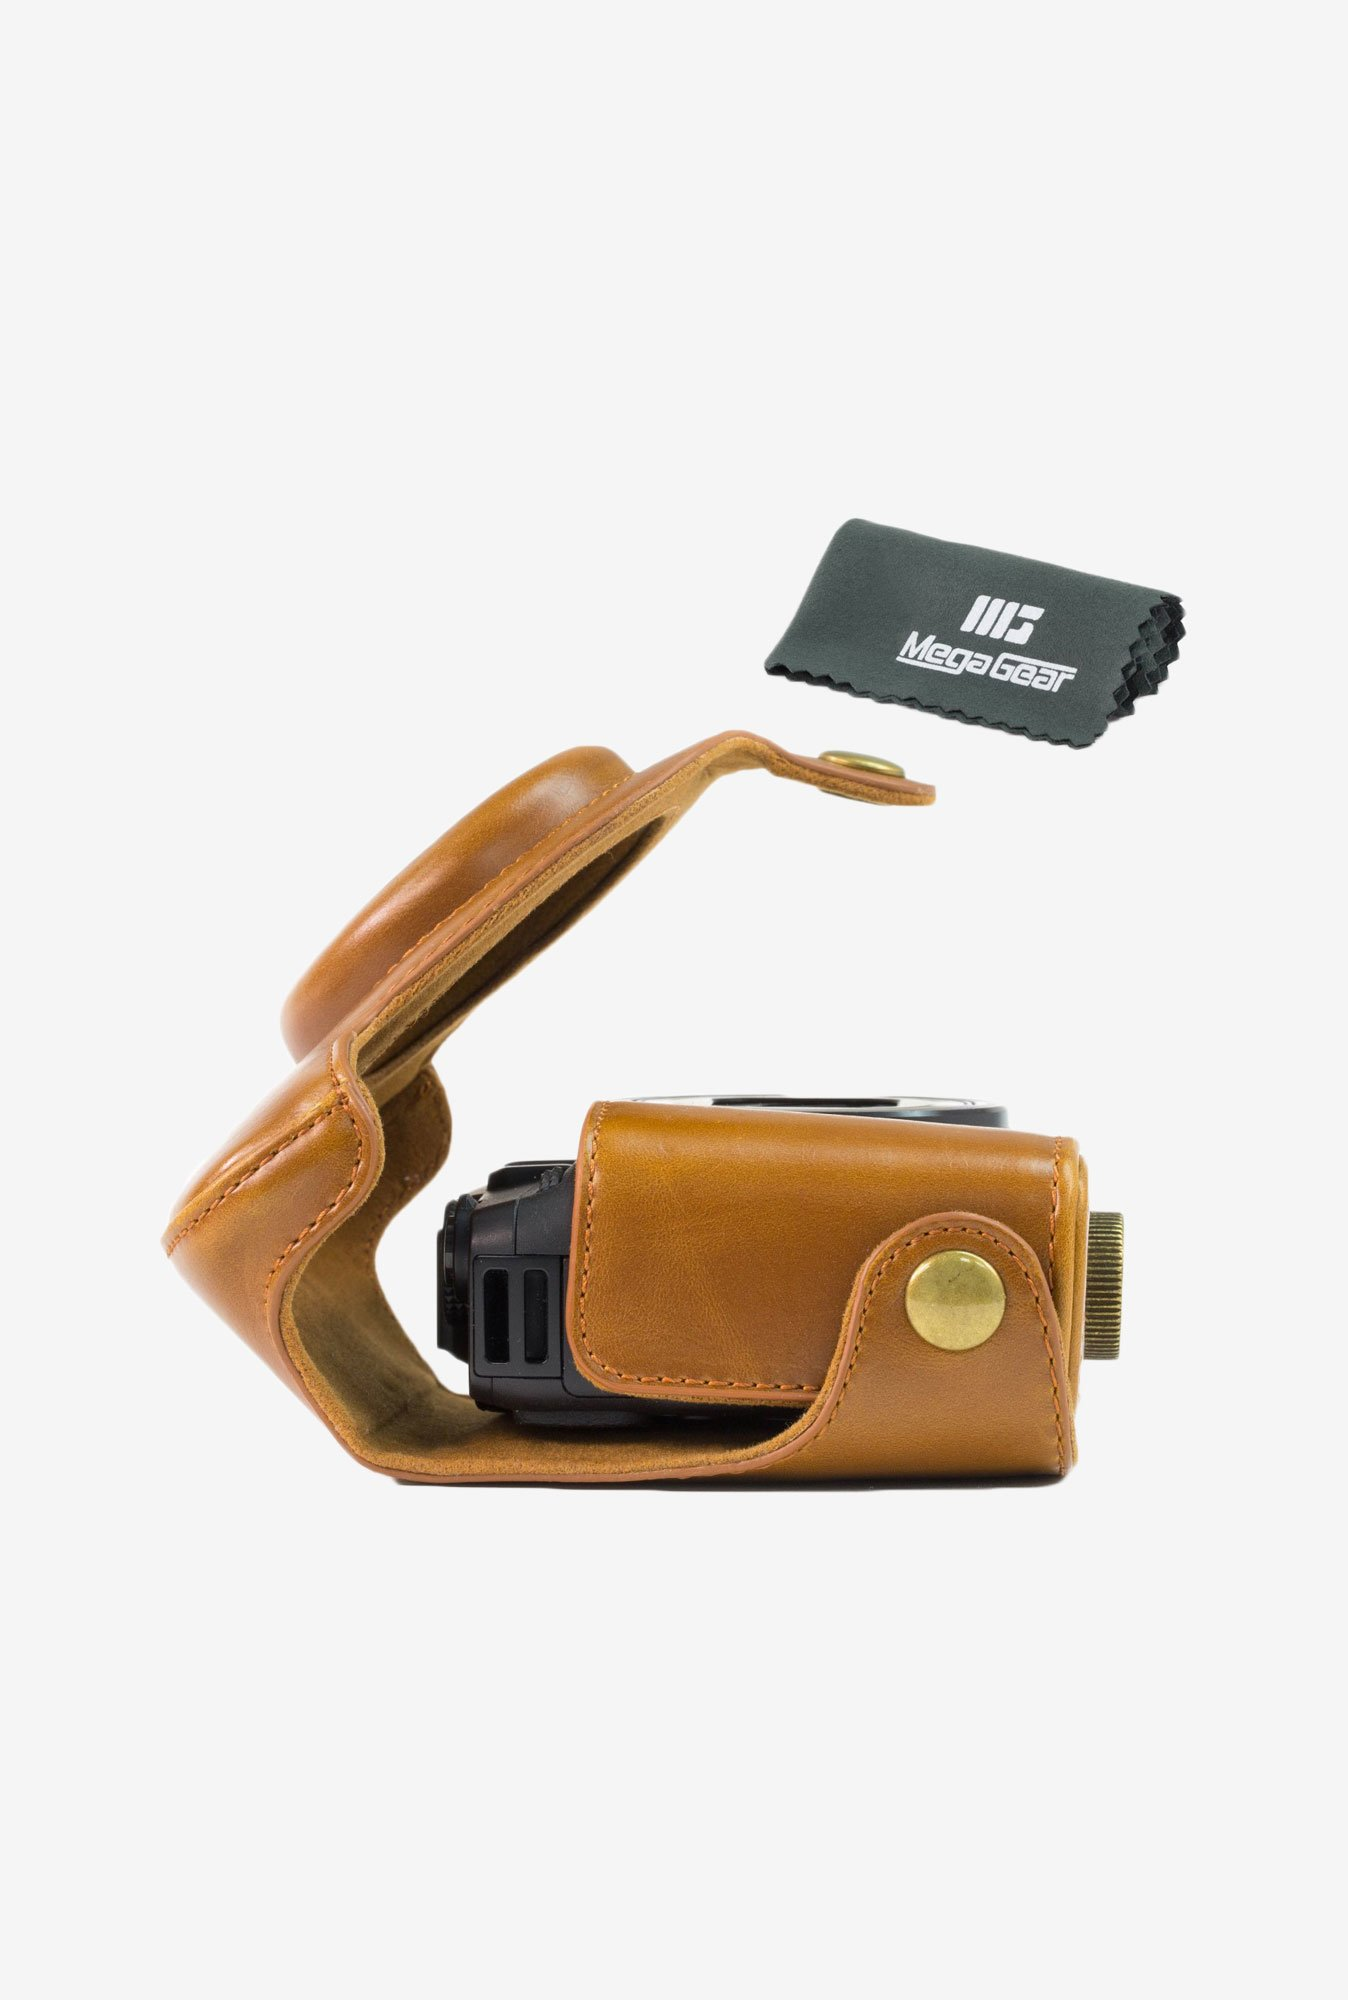 MegaGear Leather Camera Case for Canon PowerShot G16 (Brown)